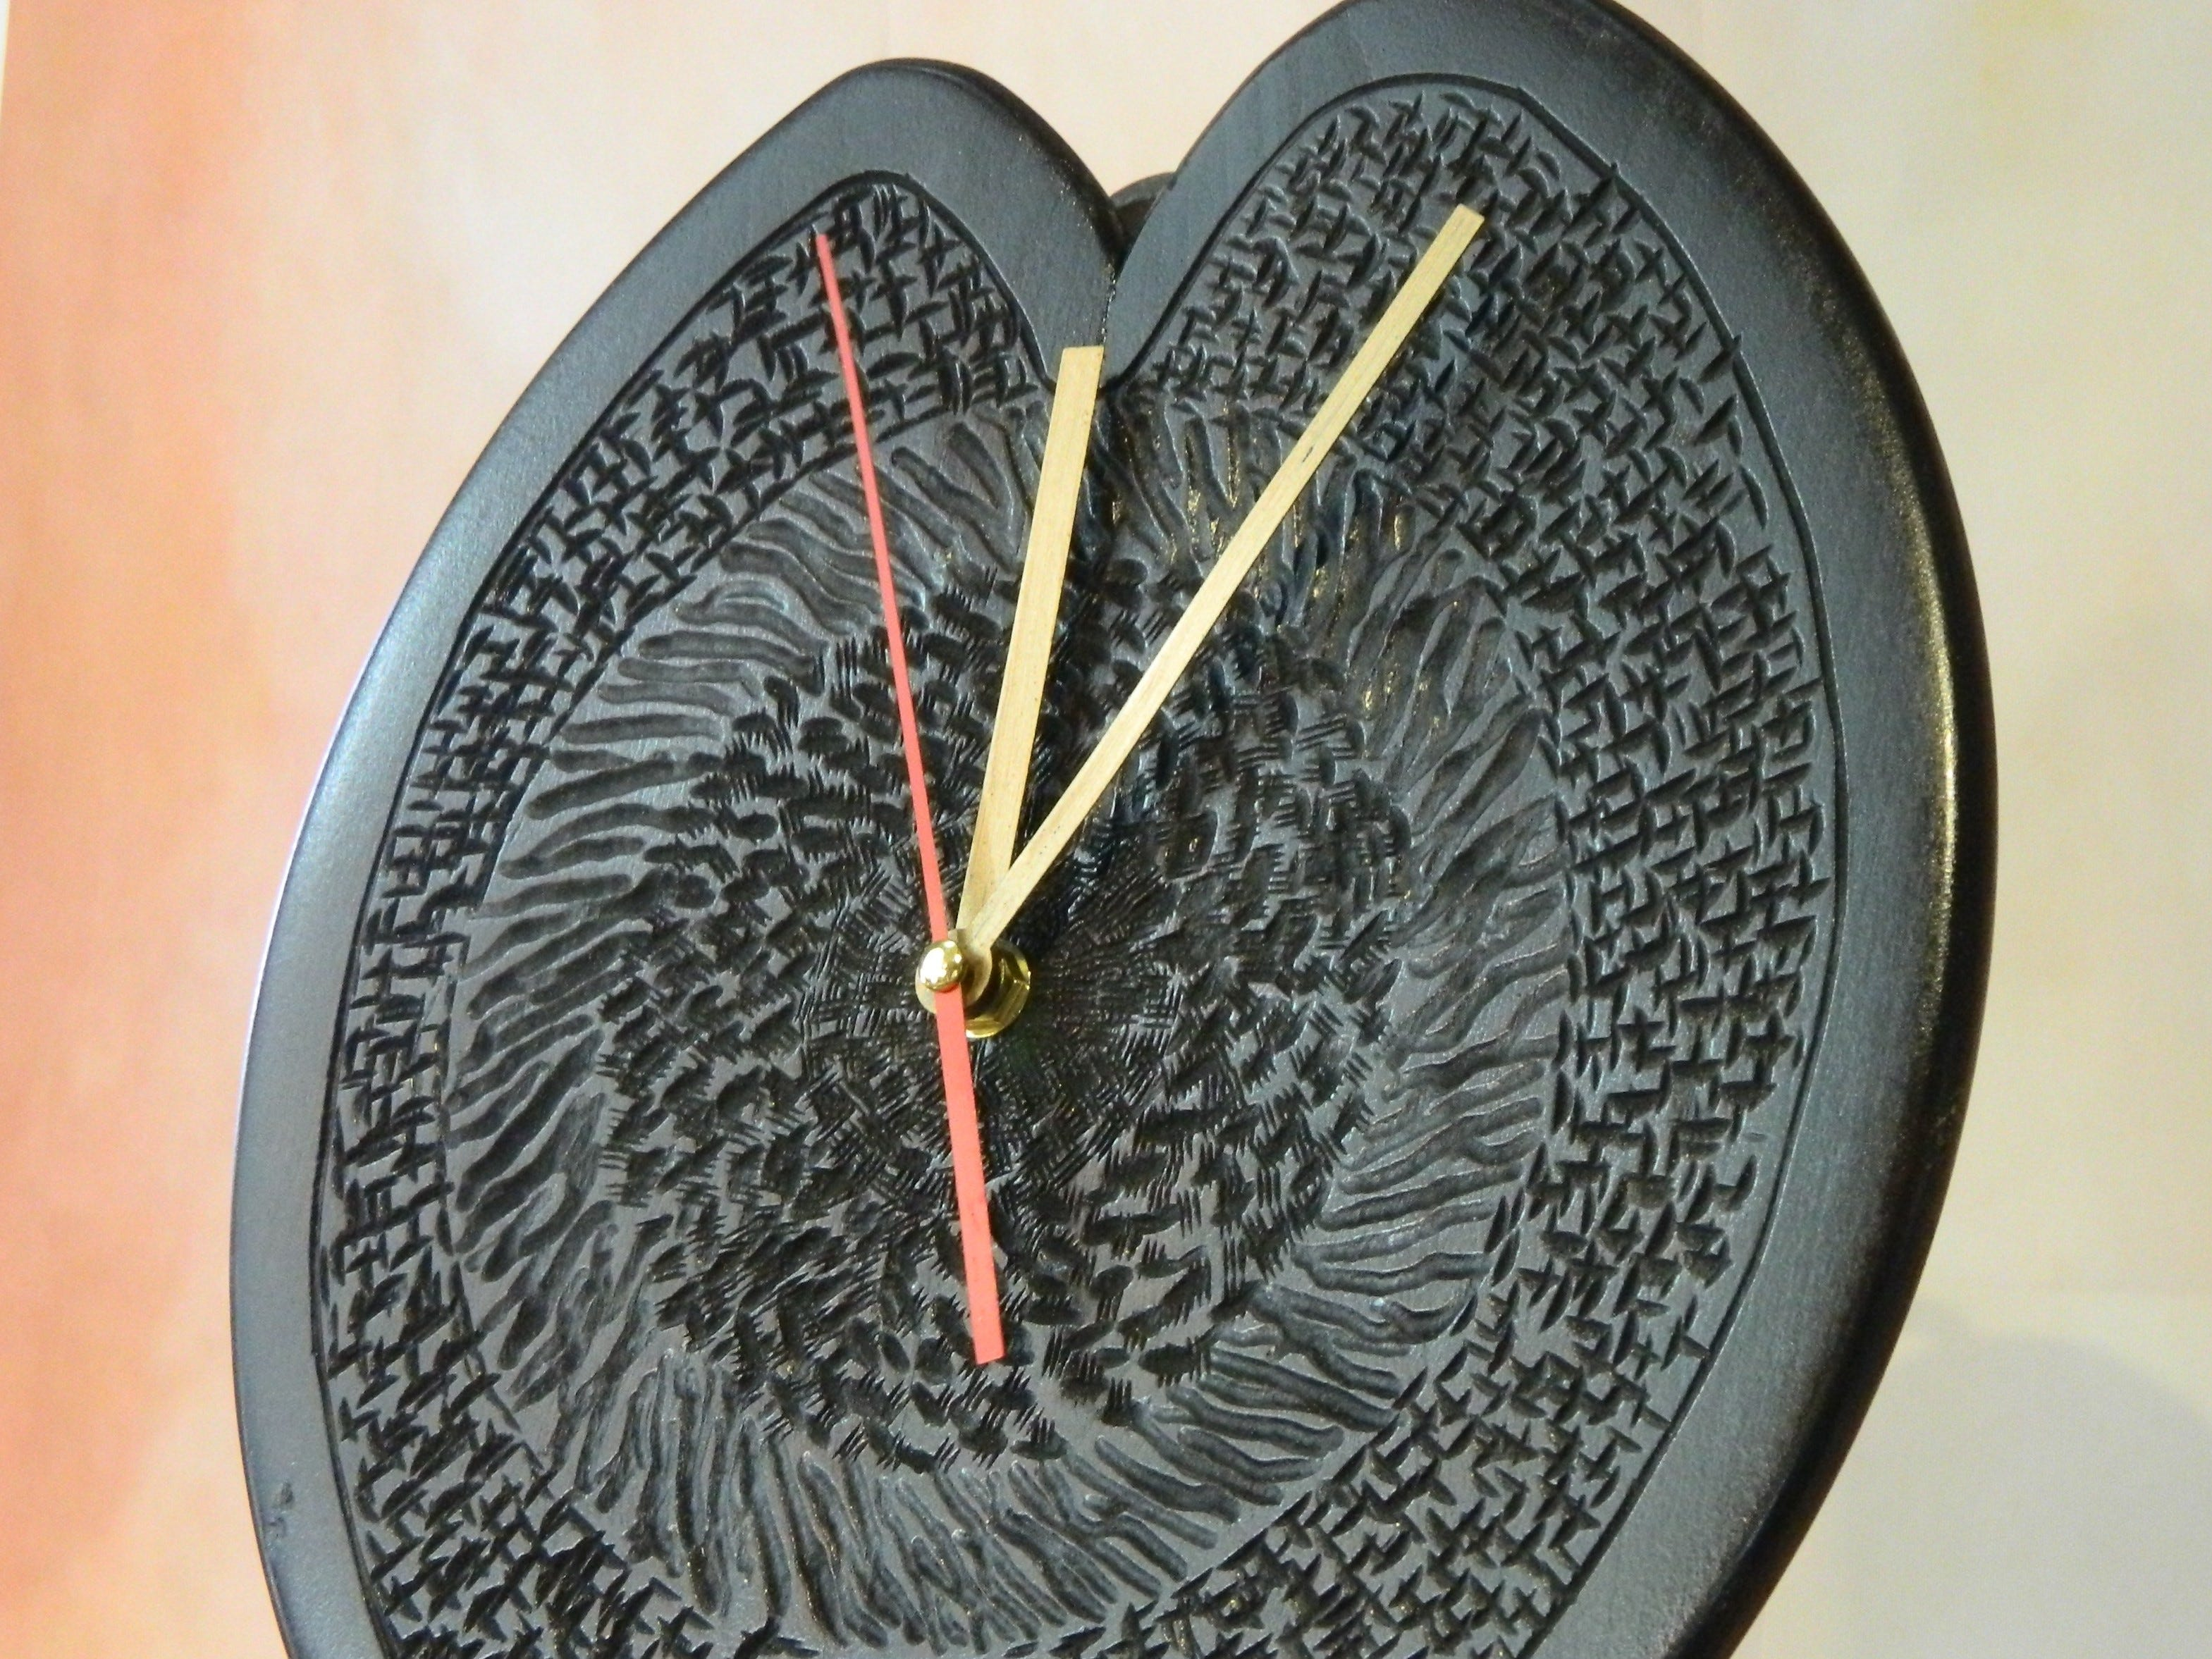 This 12-by-10-inch heart-shaped clock from Tom Woodley ($75) is made of black cherry.